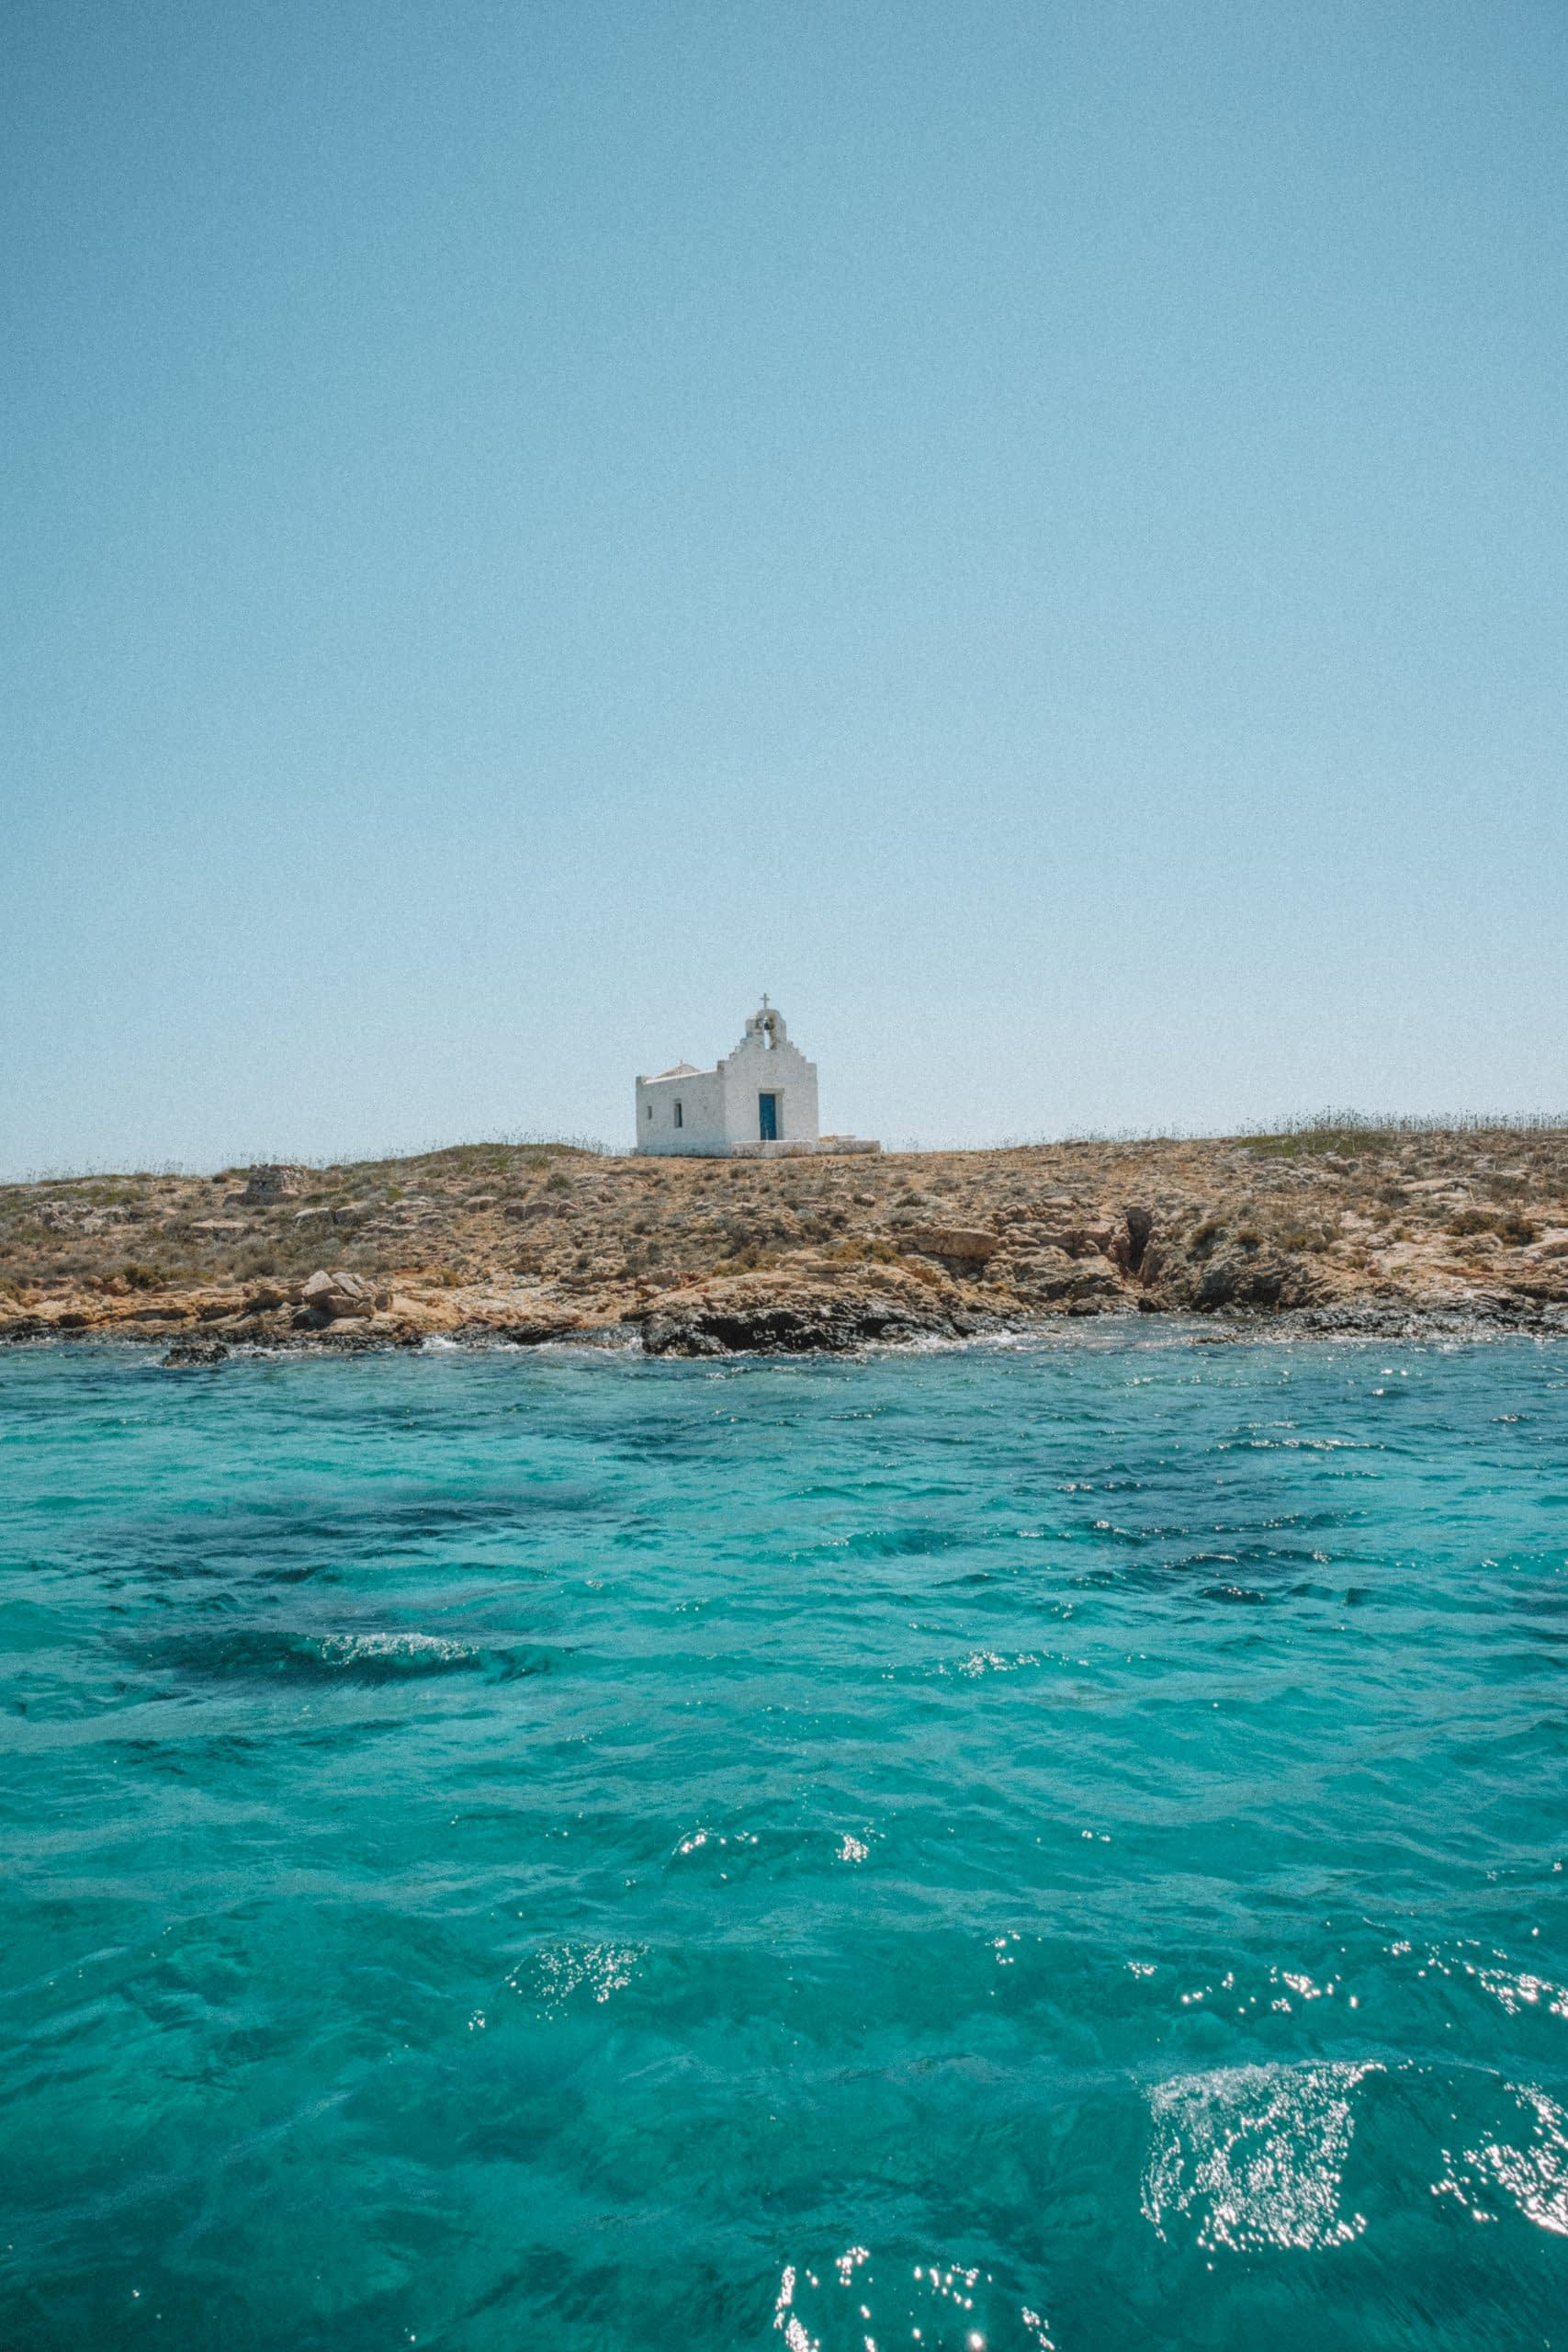 A church on rocks in the sea. Things to see in Paros